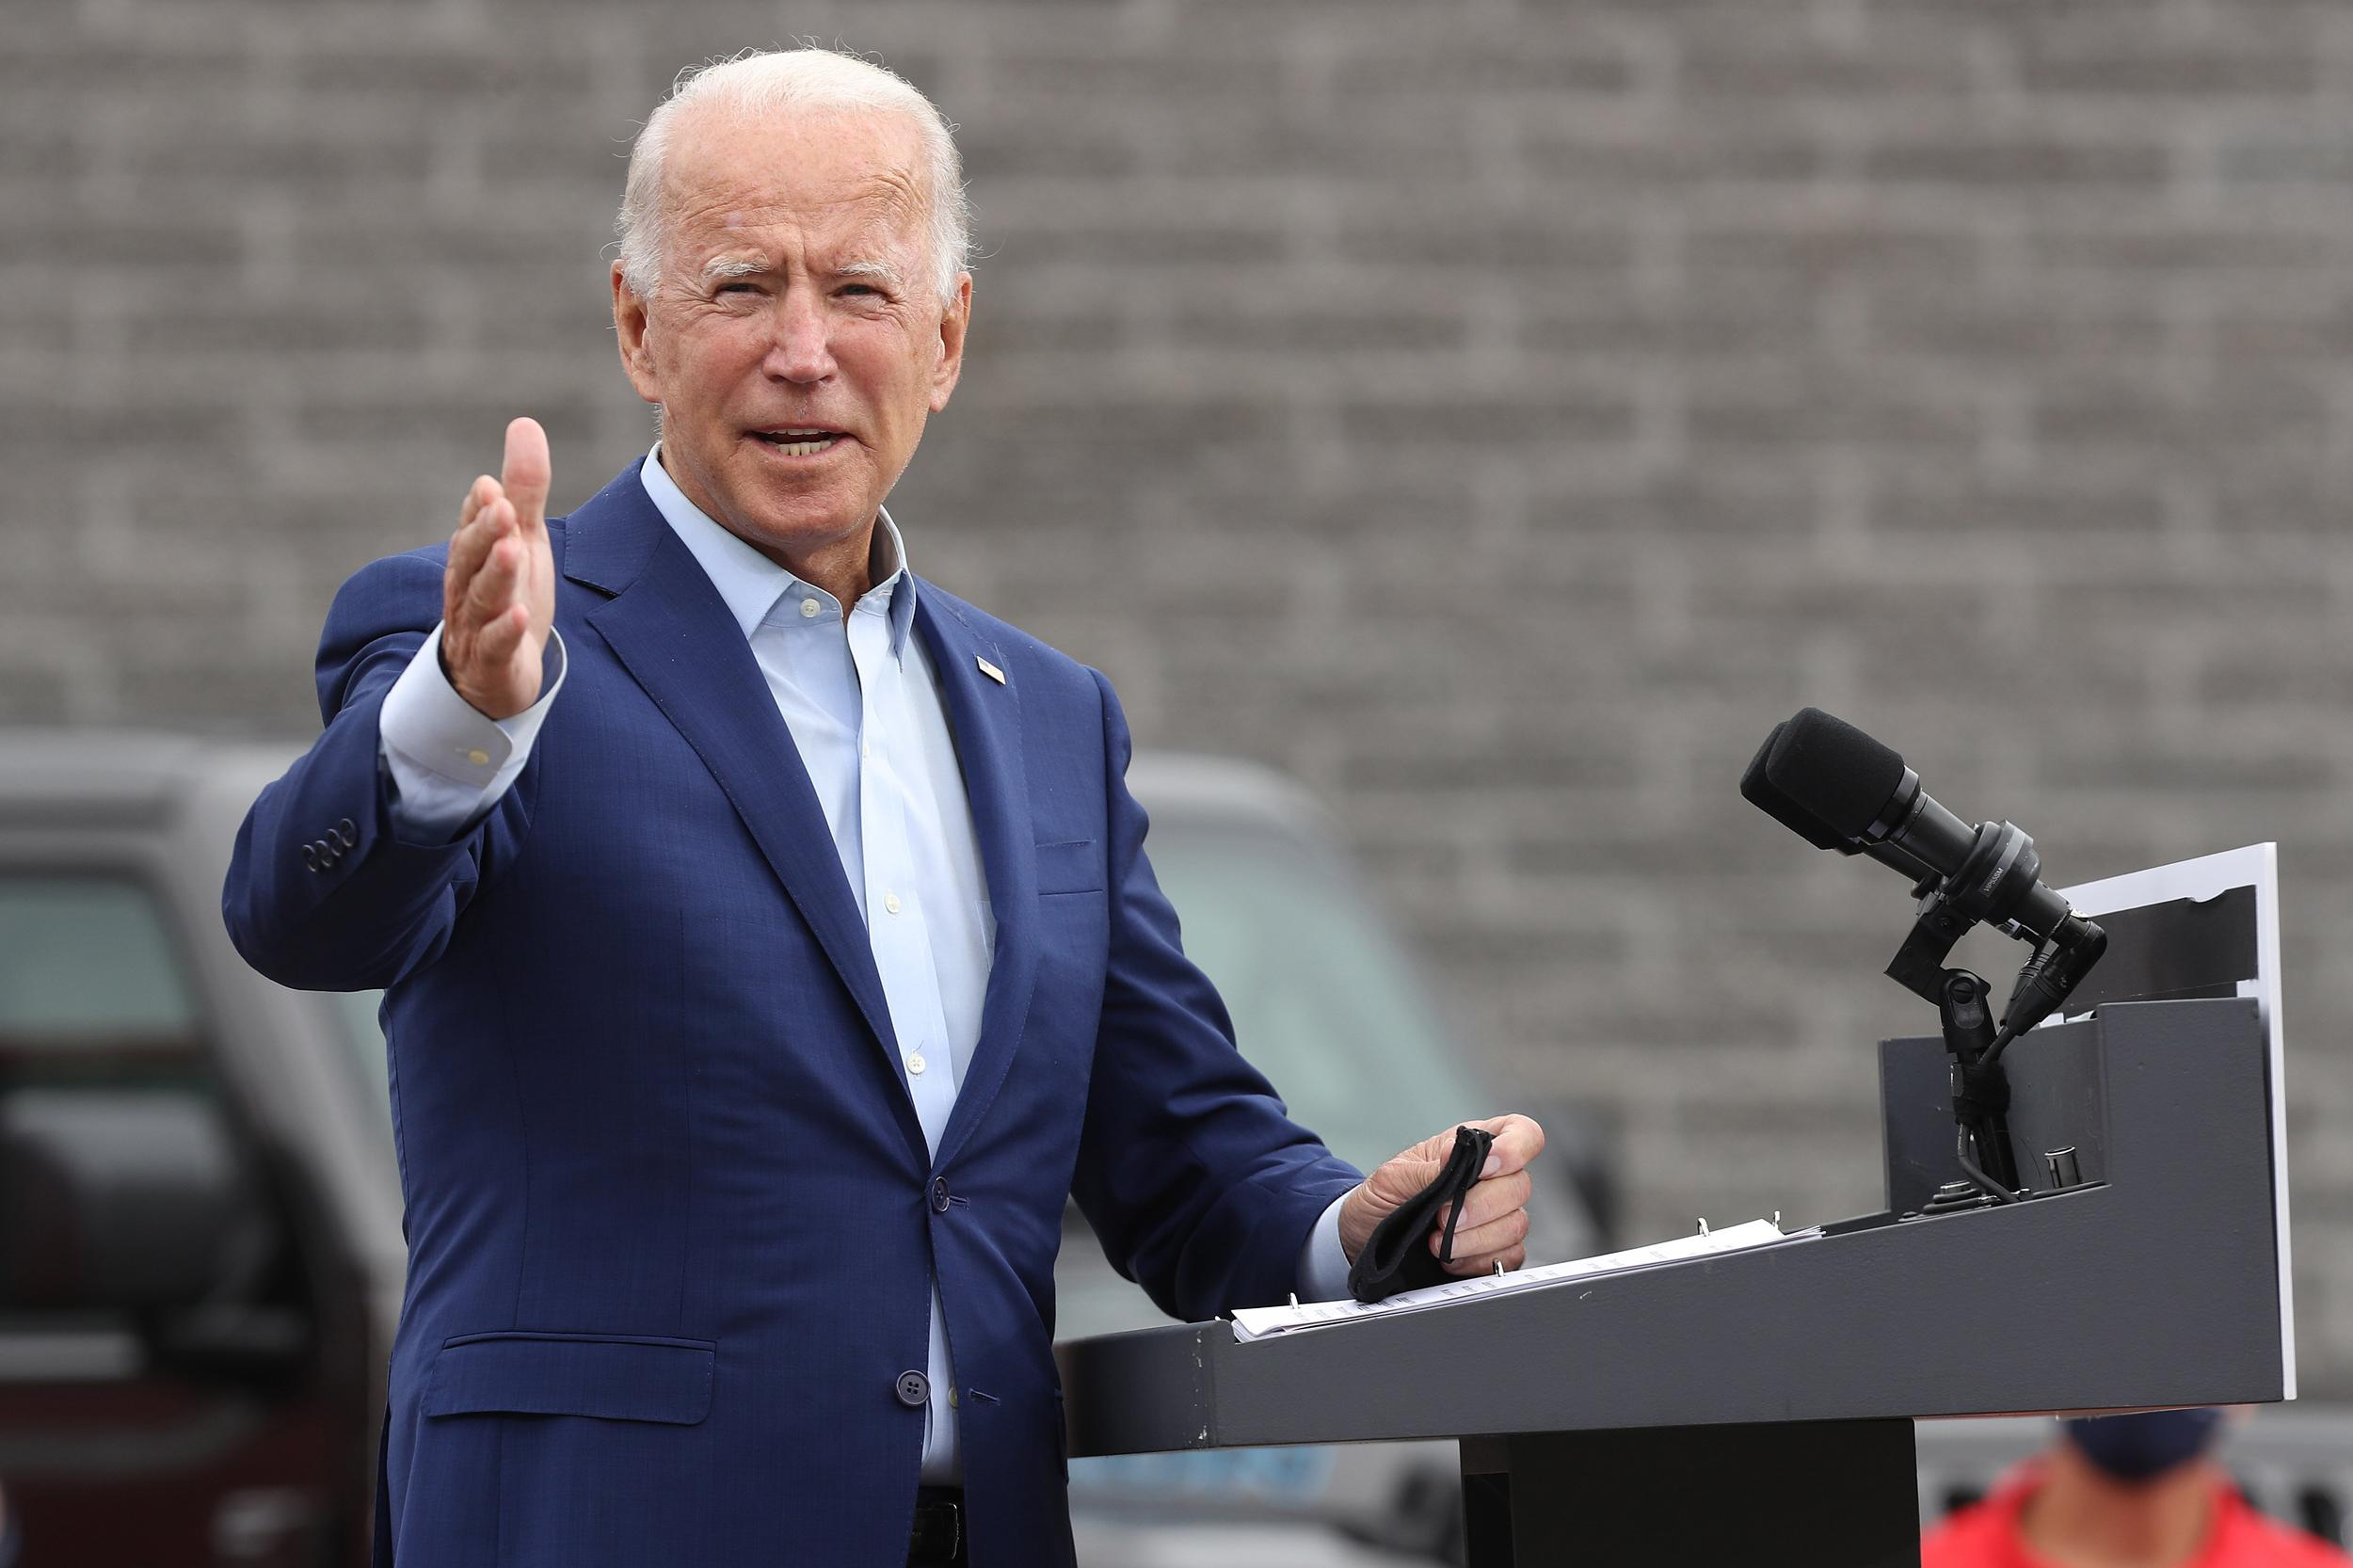 Biden says he's eager to debate Trump: 'I know how to handle bullies'